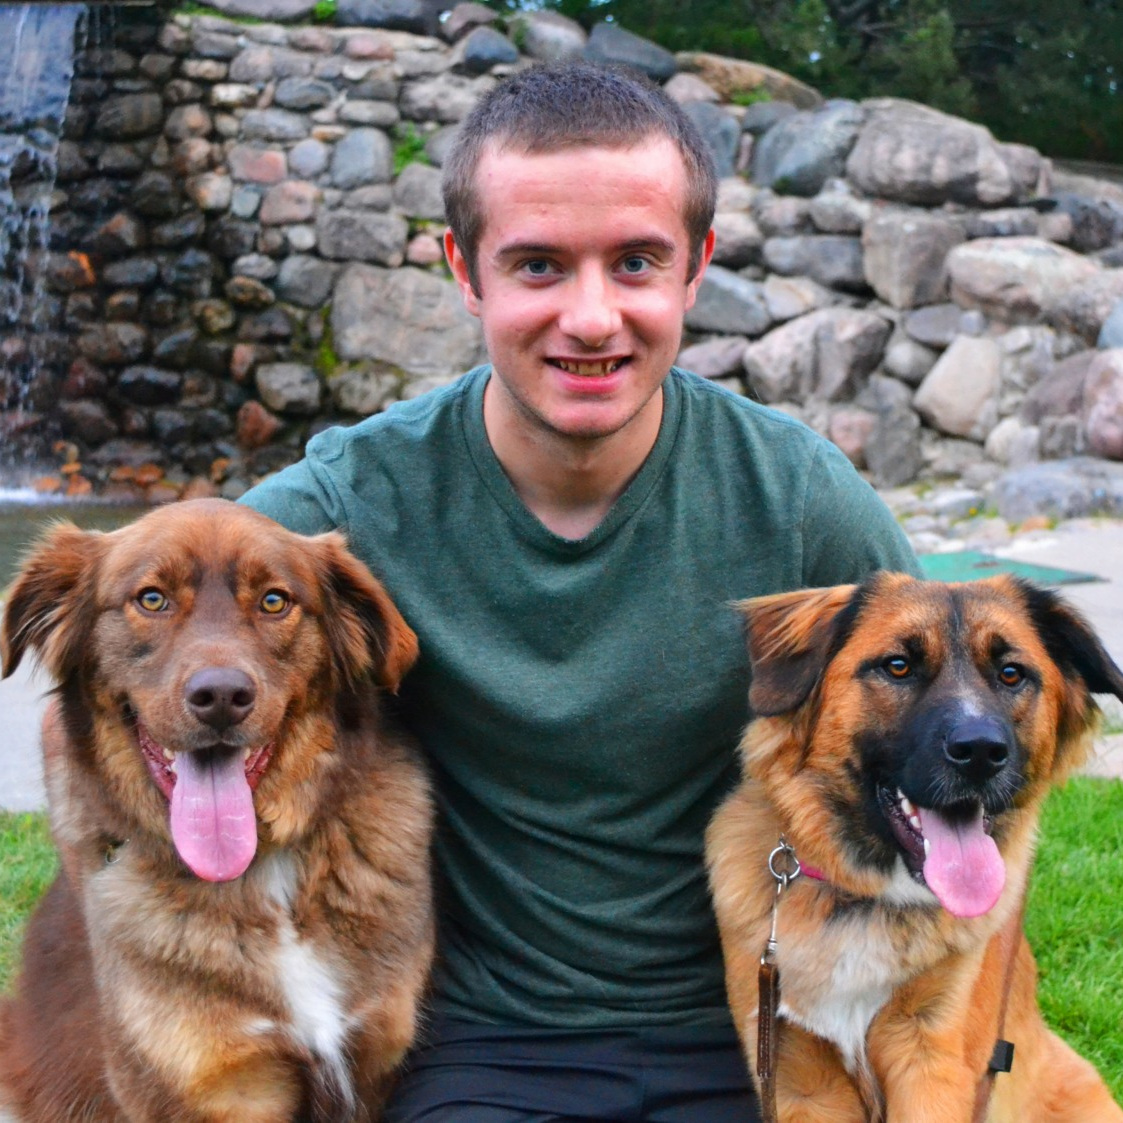 Scott Pilon with two dogs in front of a stone wall